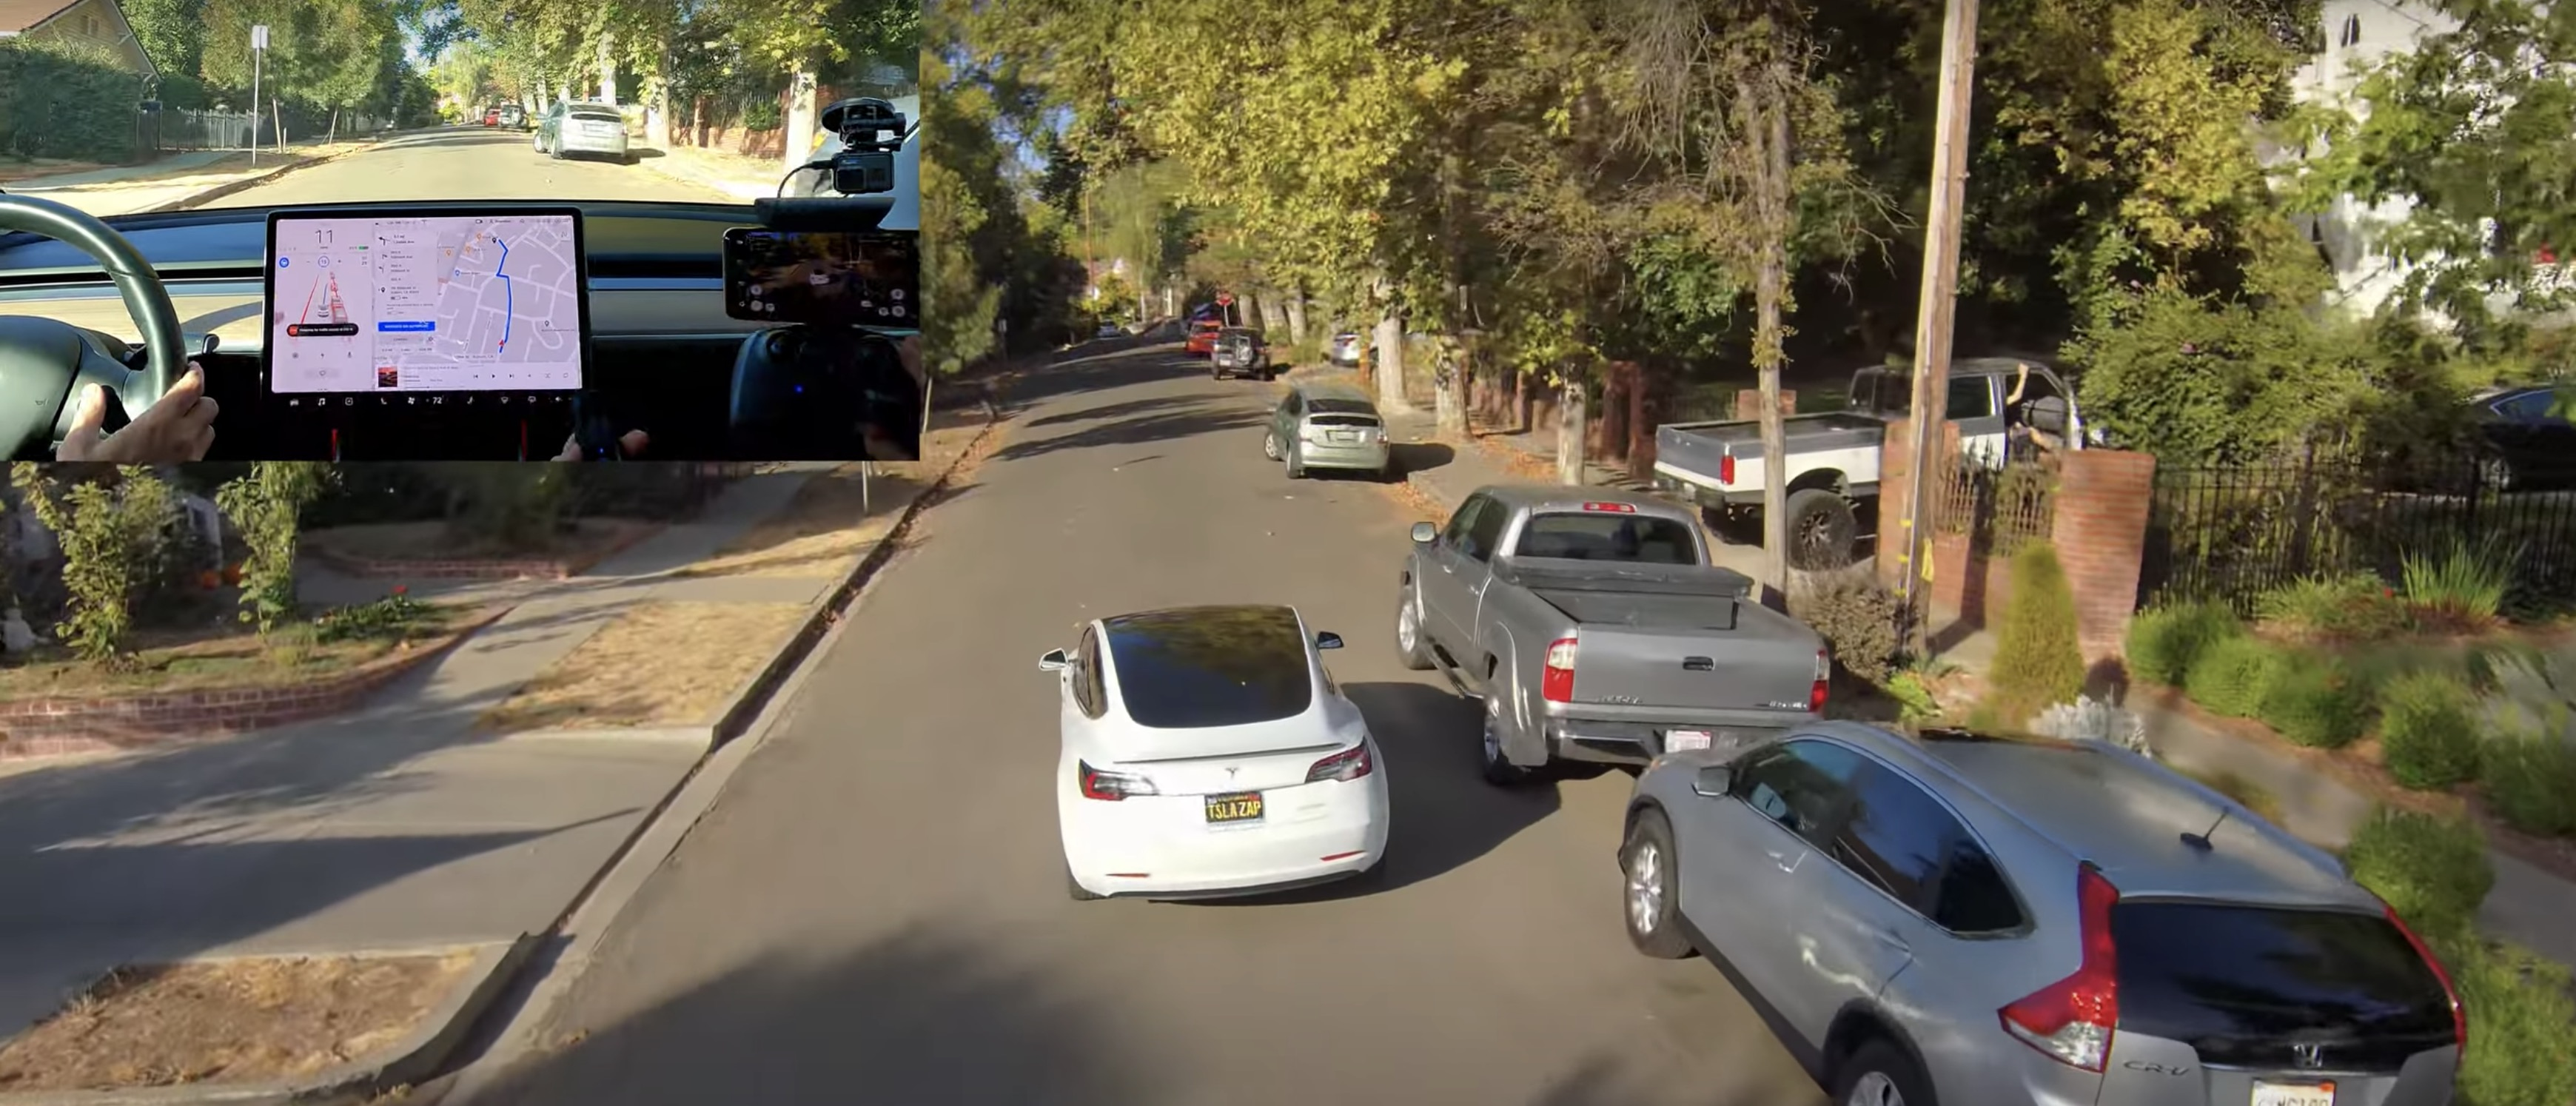 Watch Tesla Full Self-Driving Beta's performance from the sky with scary near-miss - Electrek